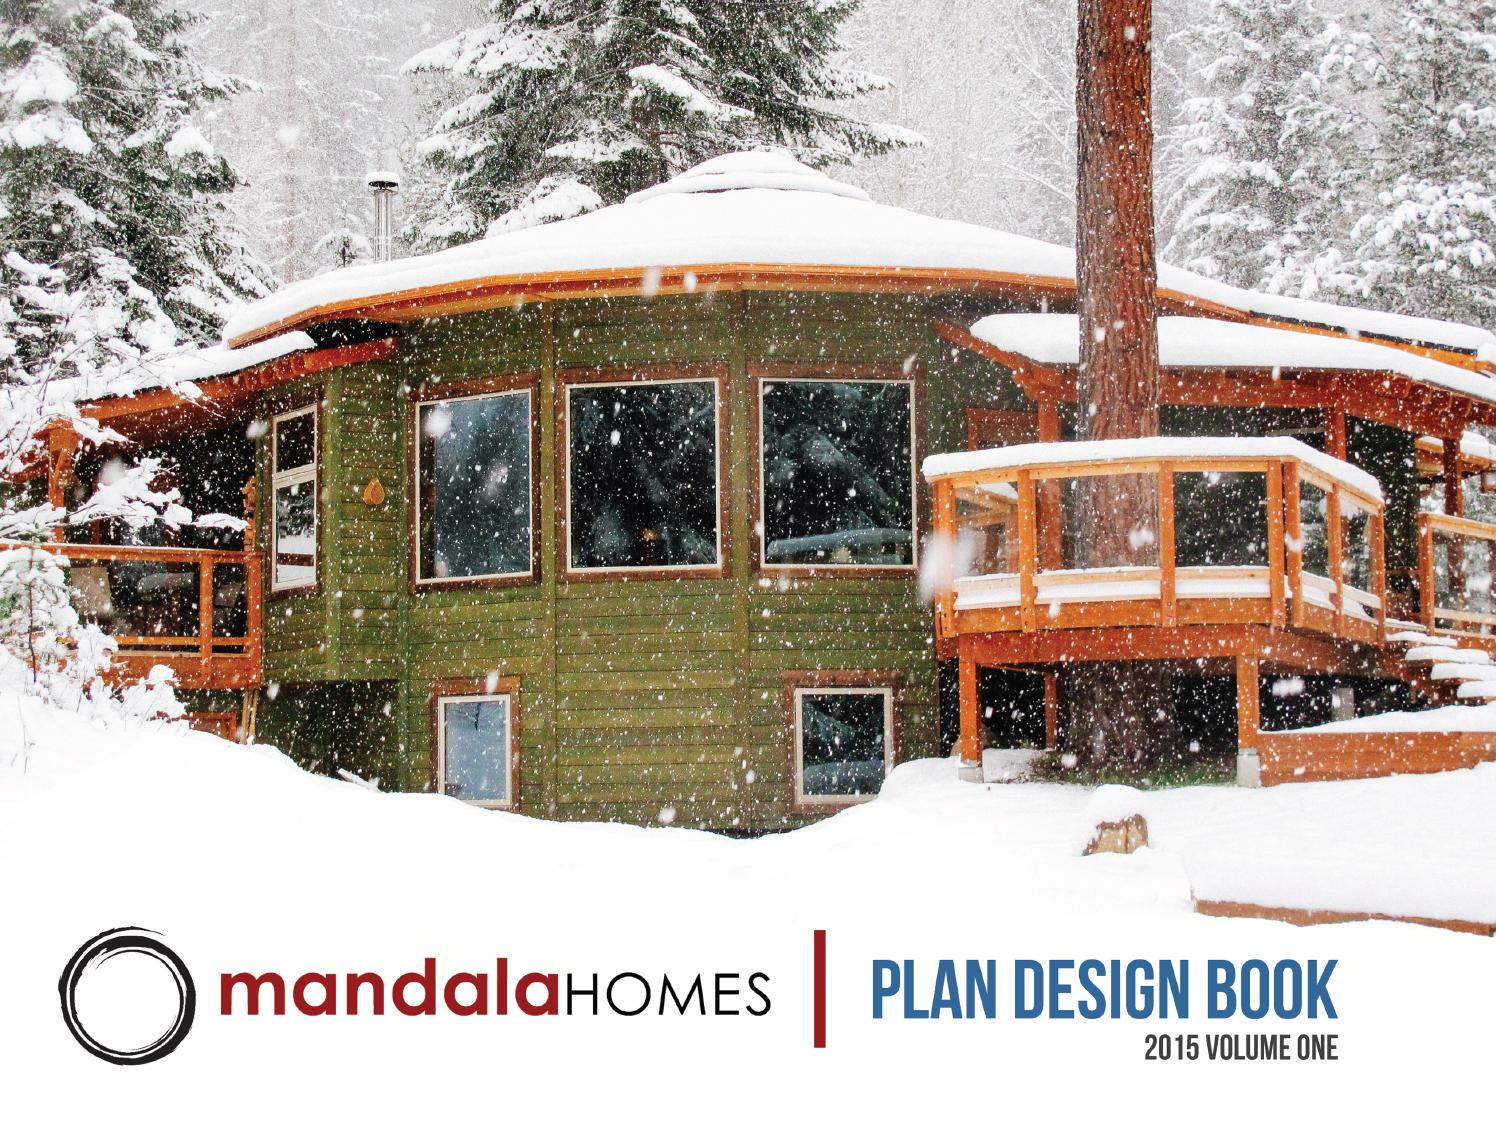 mandala homes plan design book 2015 volume onemandala custom